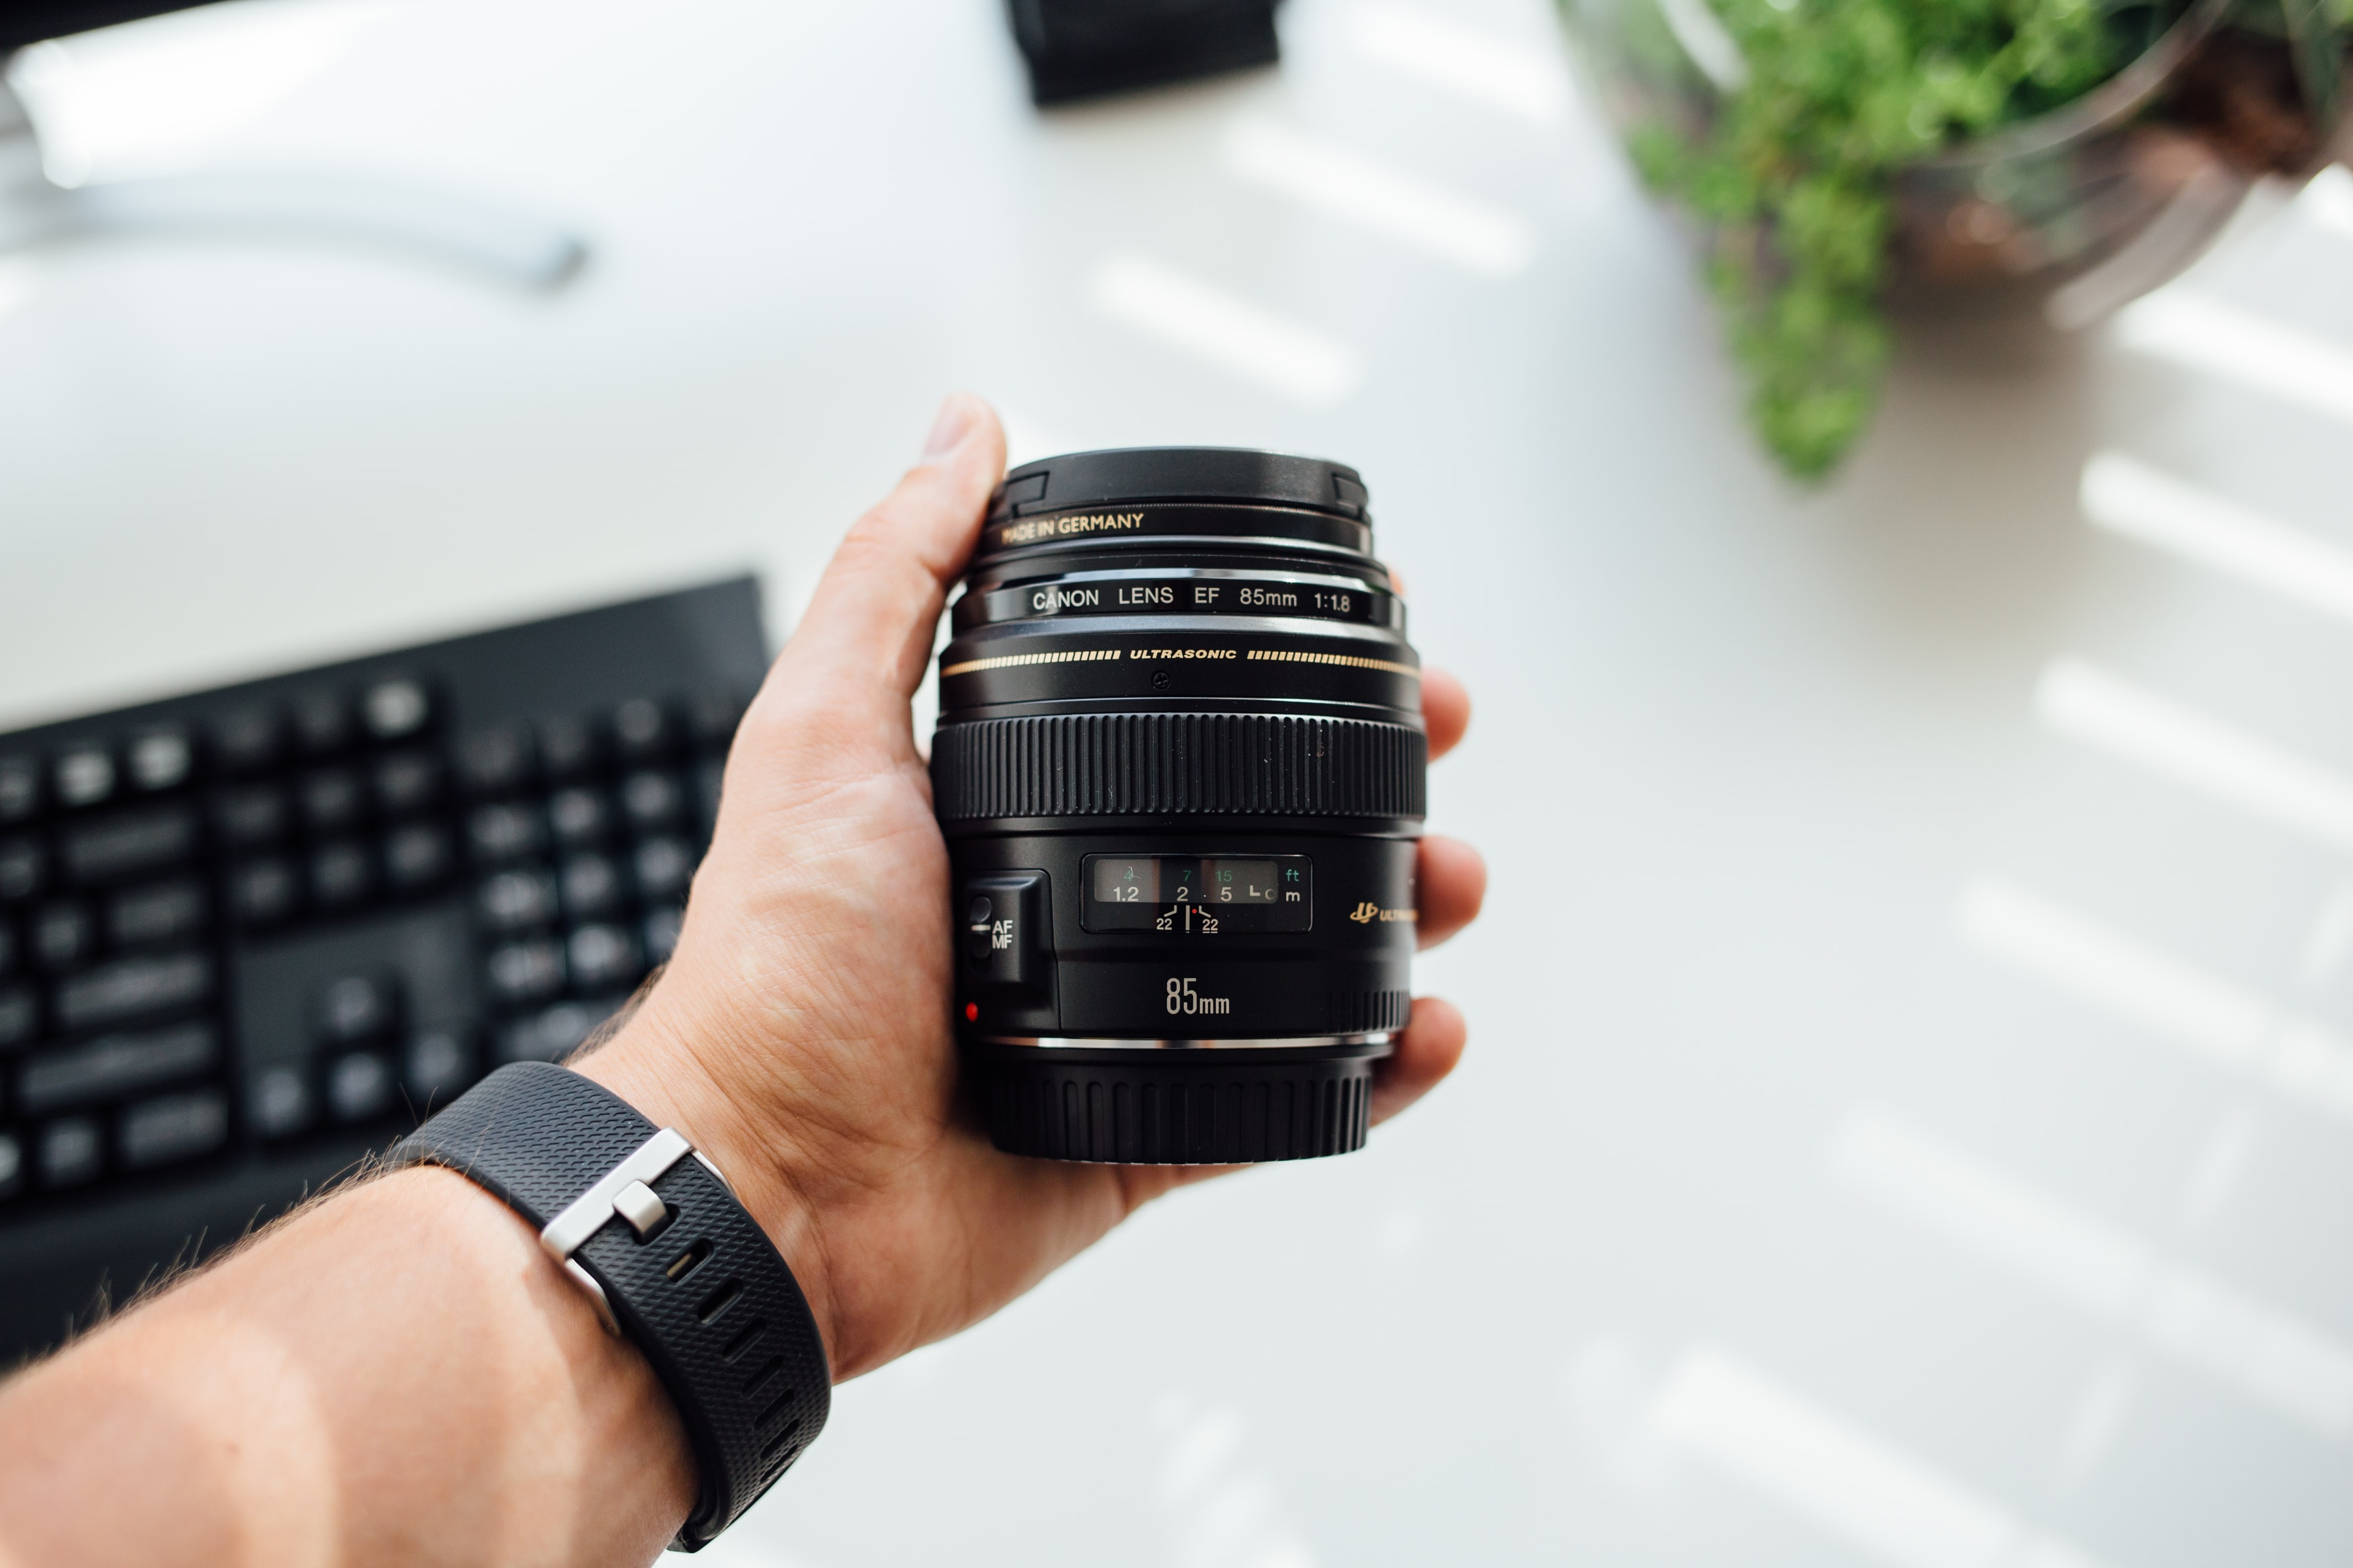 person holding DSLR camera lens